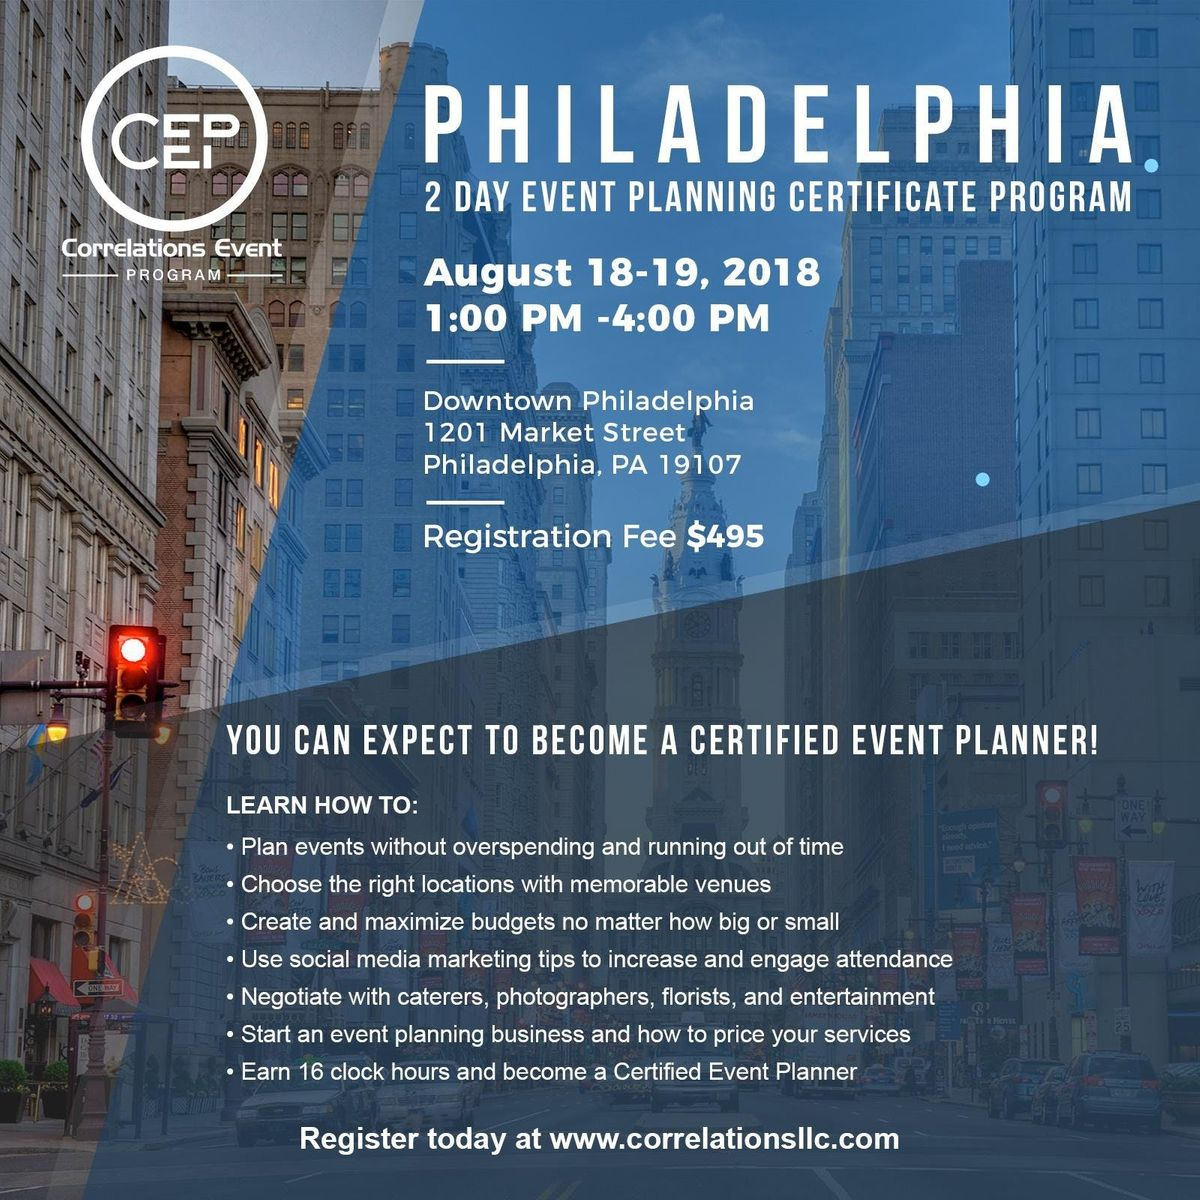 2 Day Philadelphia Event Planning Certificate Program August 18 19